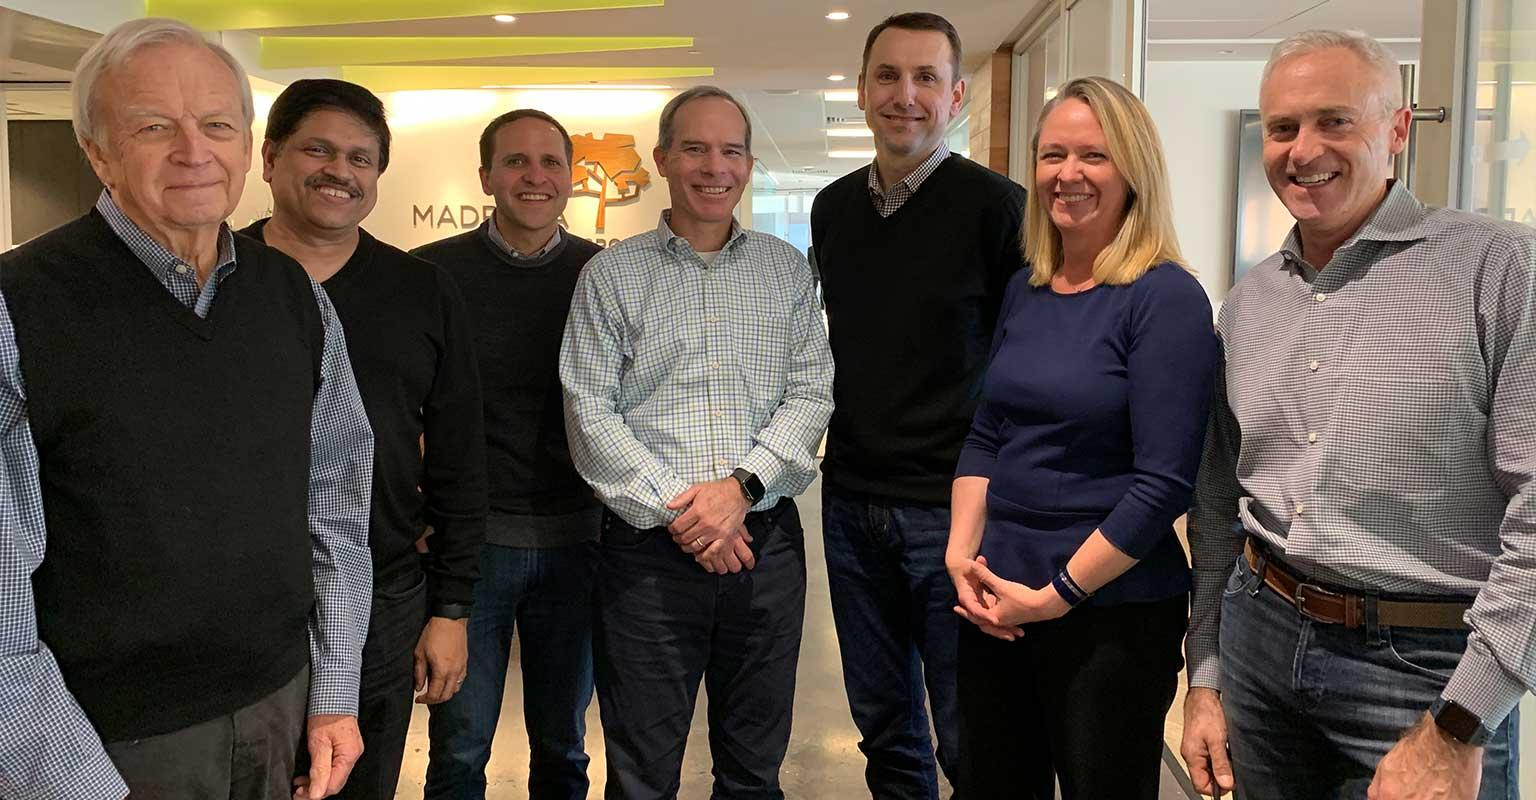 Seattle-based Madrona raises $320M for its eighth fund